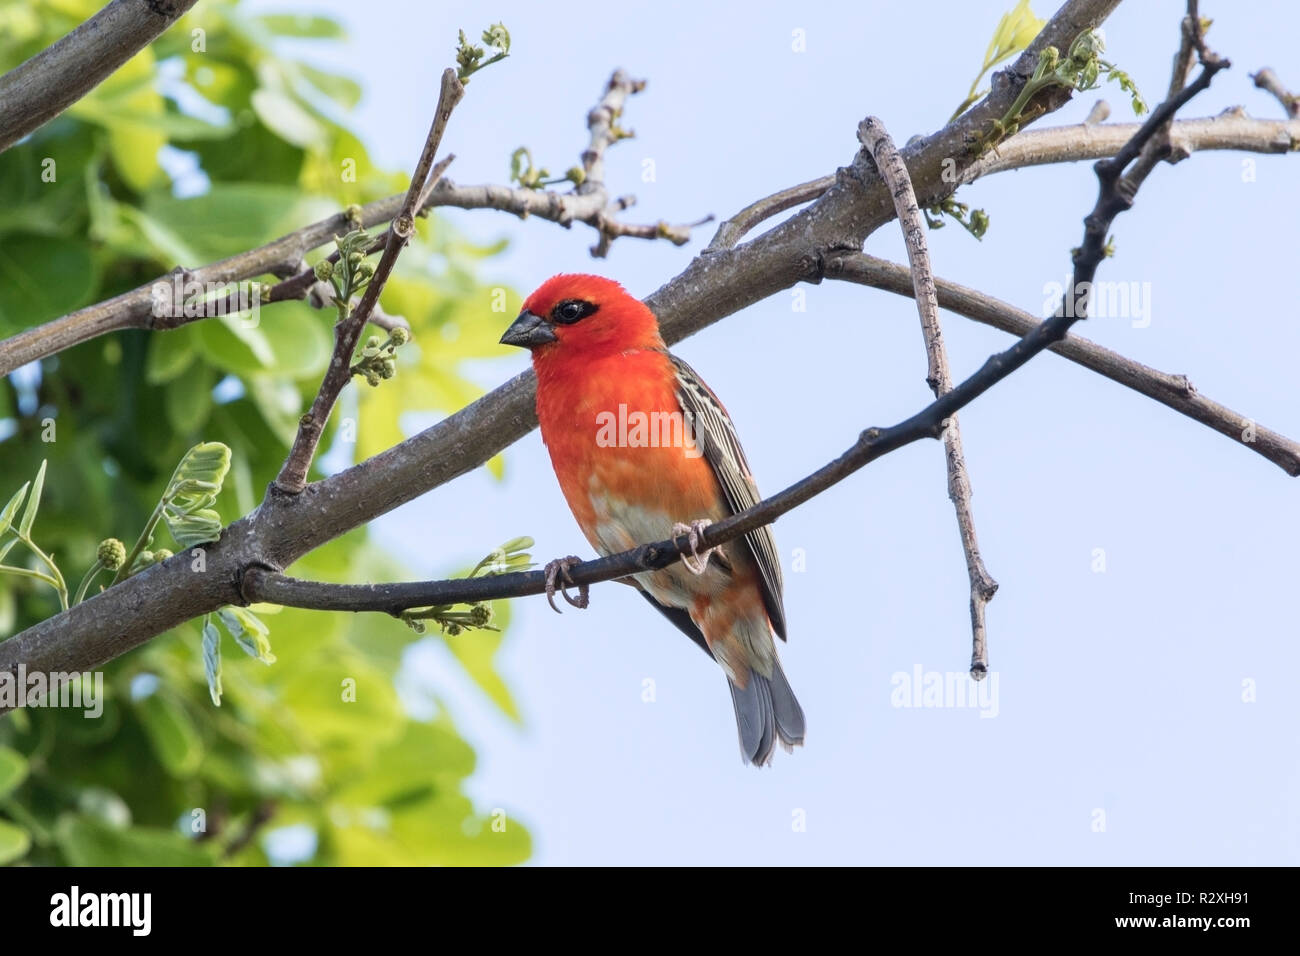 red fody or Madagascar fody Foudia madagascariensis adult male perched on tree on Mauritius, Indian Ocean - Stock Image